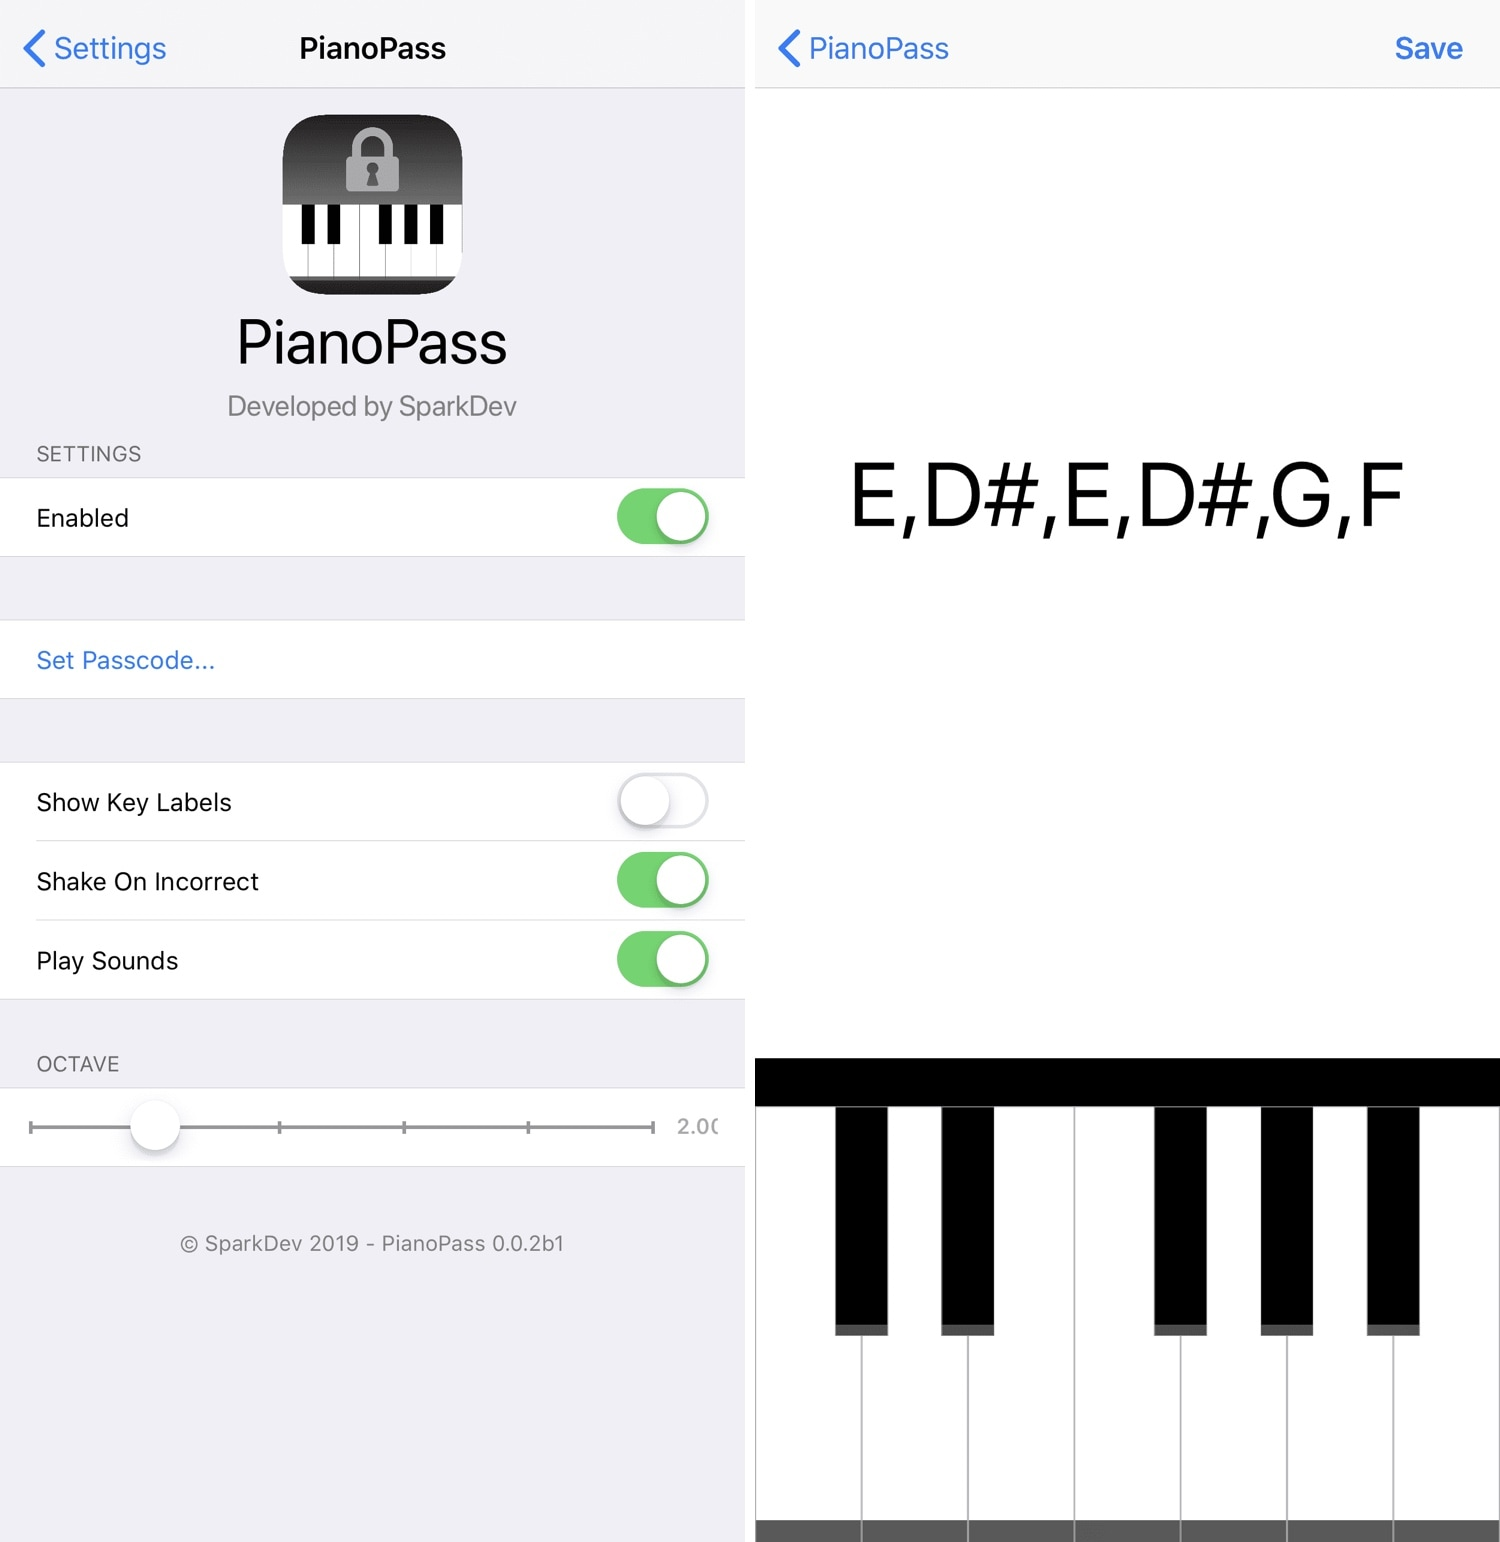 This tweak lets you unlock your iPhone with a piano-based passcode